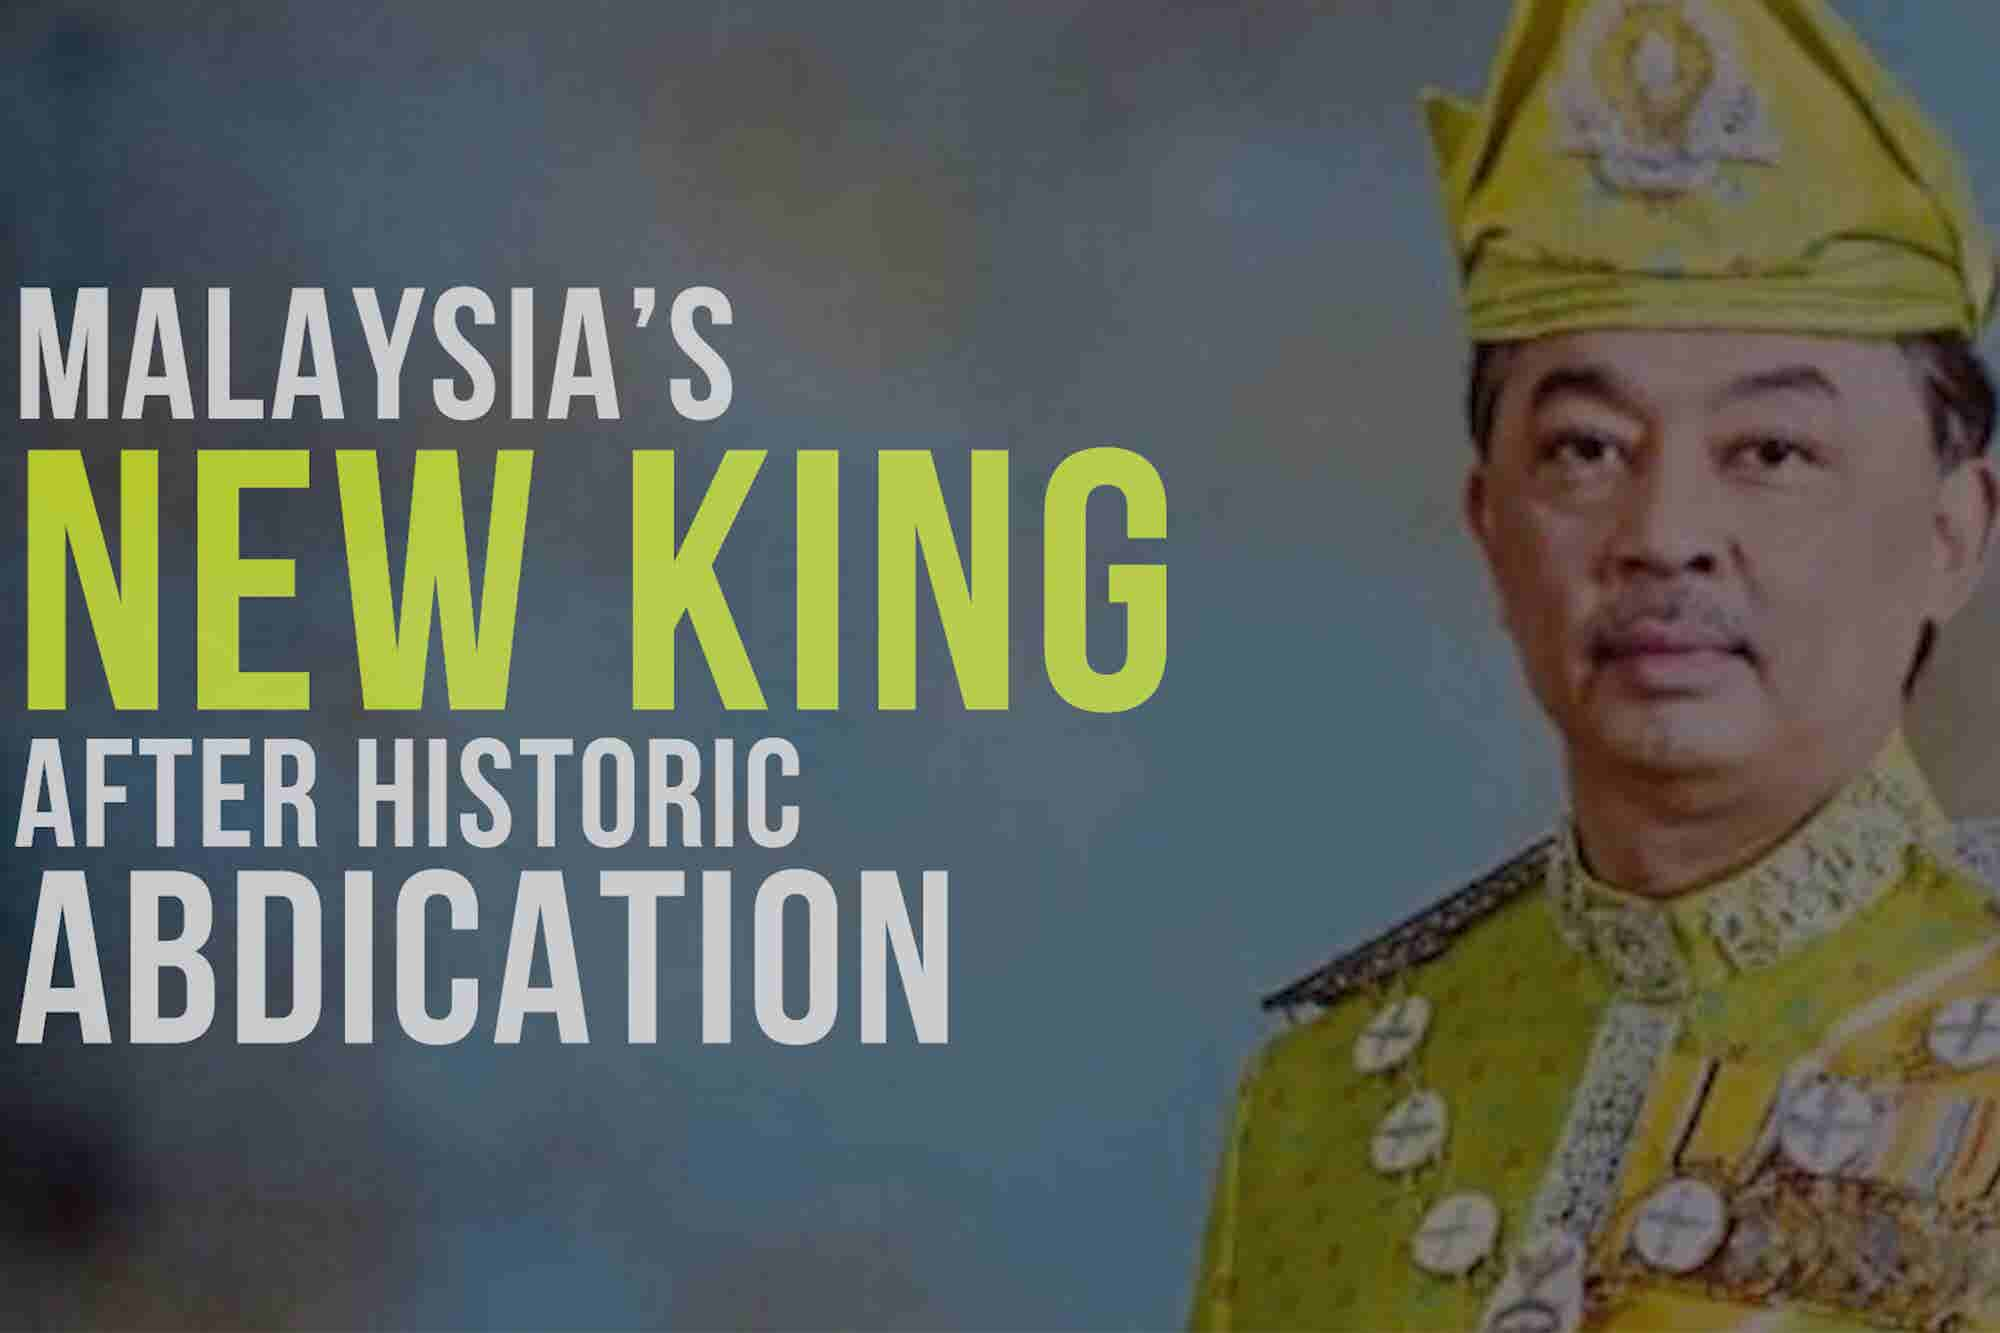 Meet Malaysia's New King who is an Extreme Sport Buff